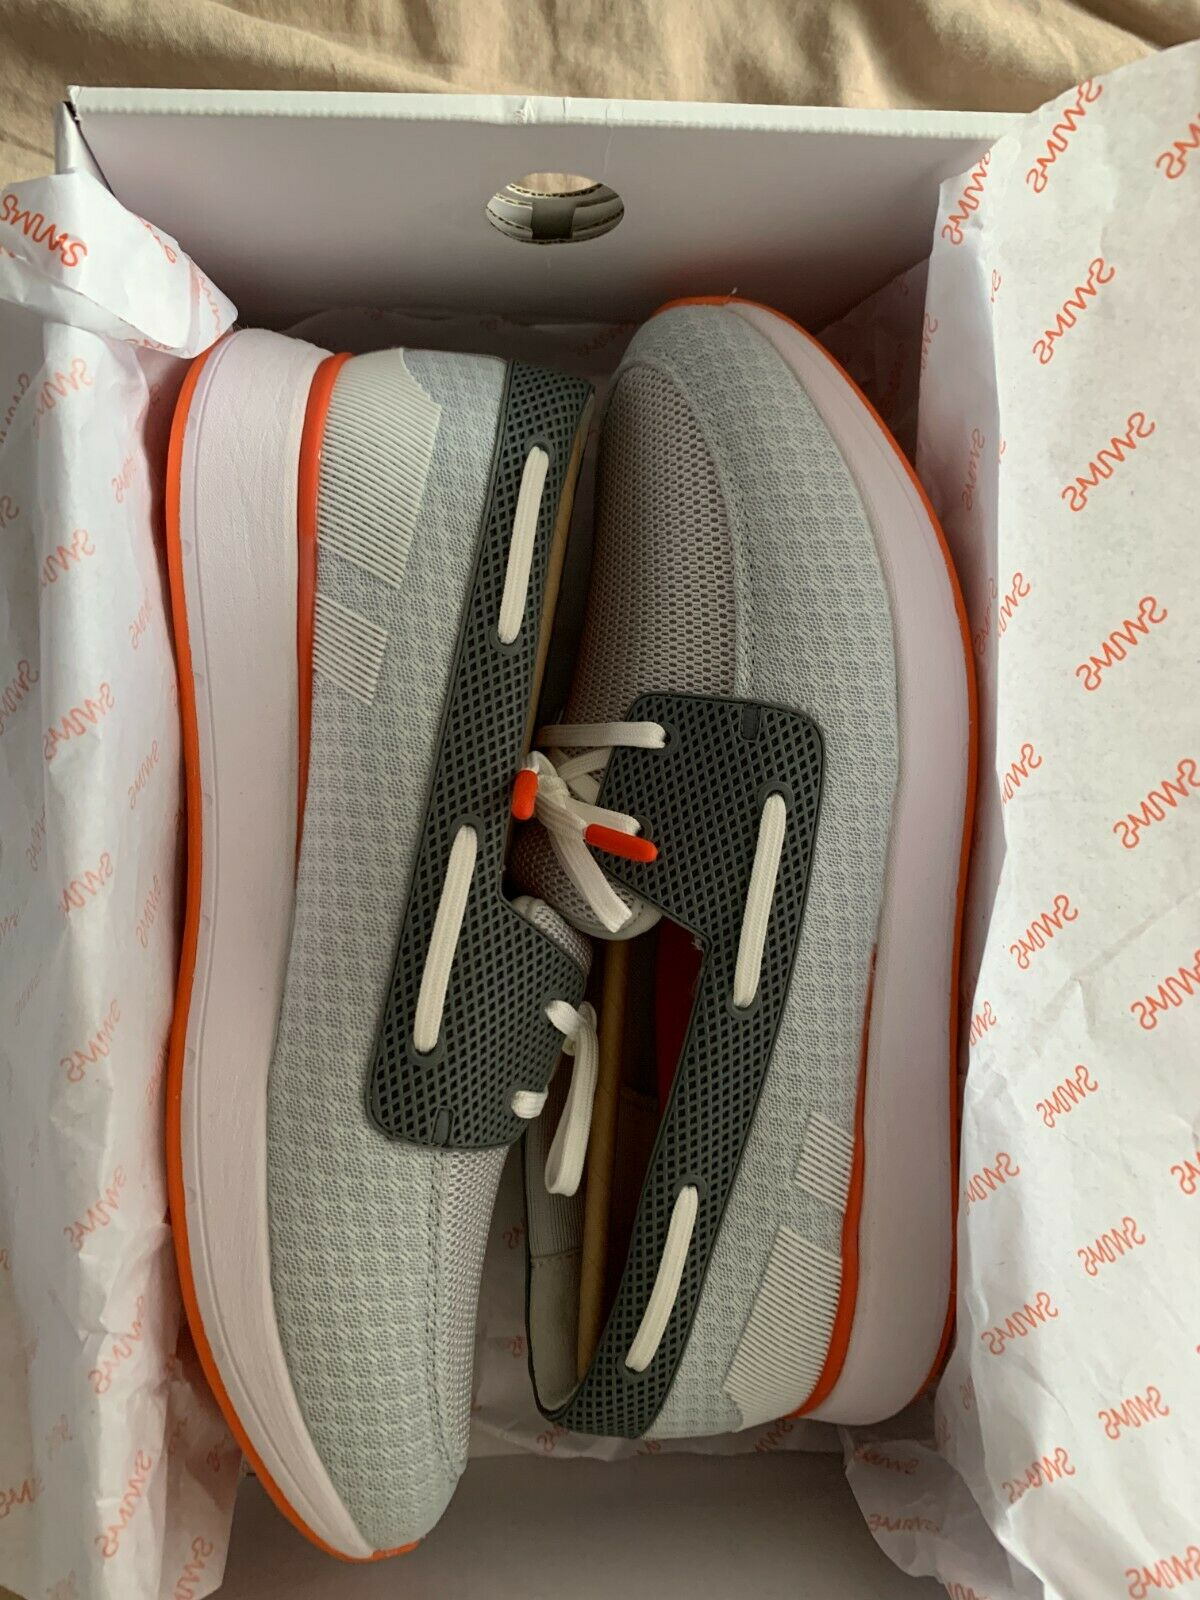 Swims BRAND NEW IN BOX breeze wave boat loafers size 6 (US 7, EU 40) beach shoes